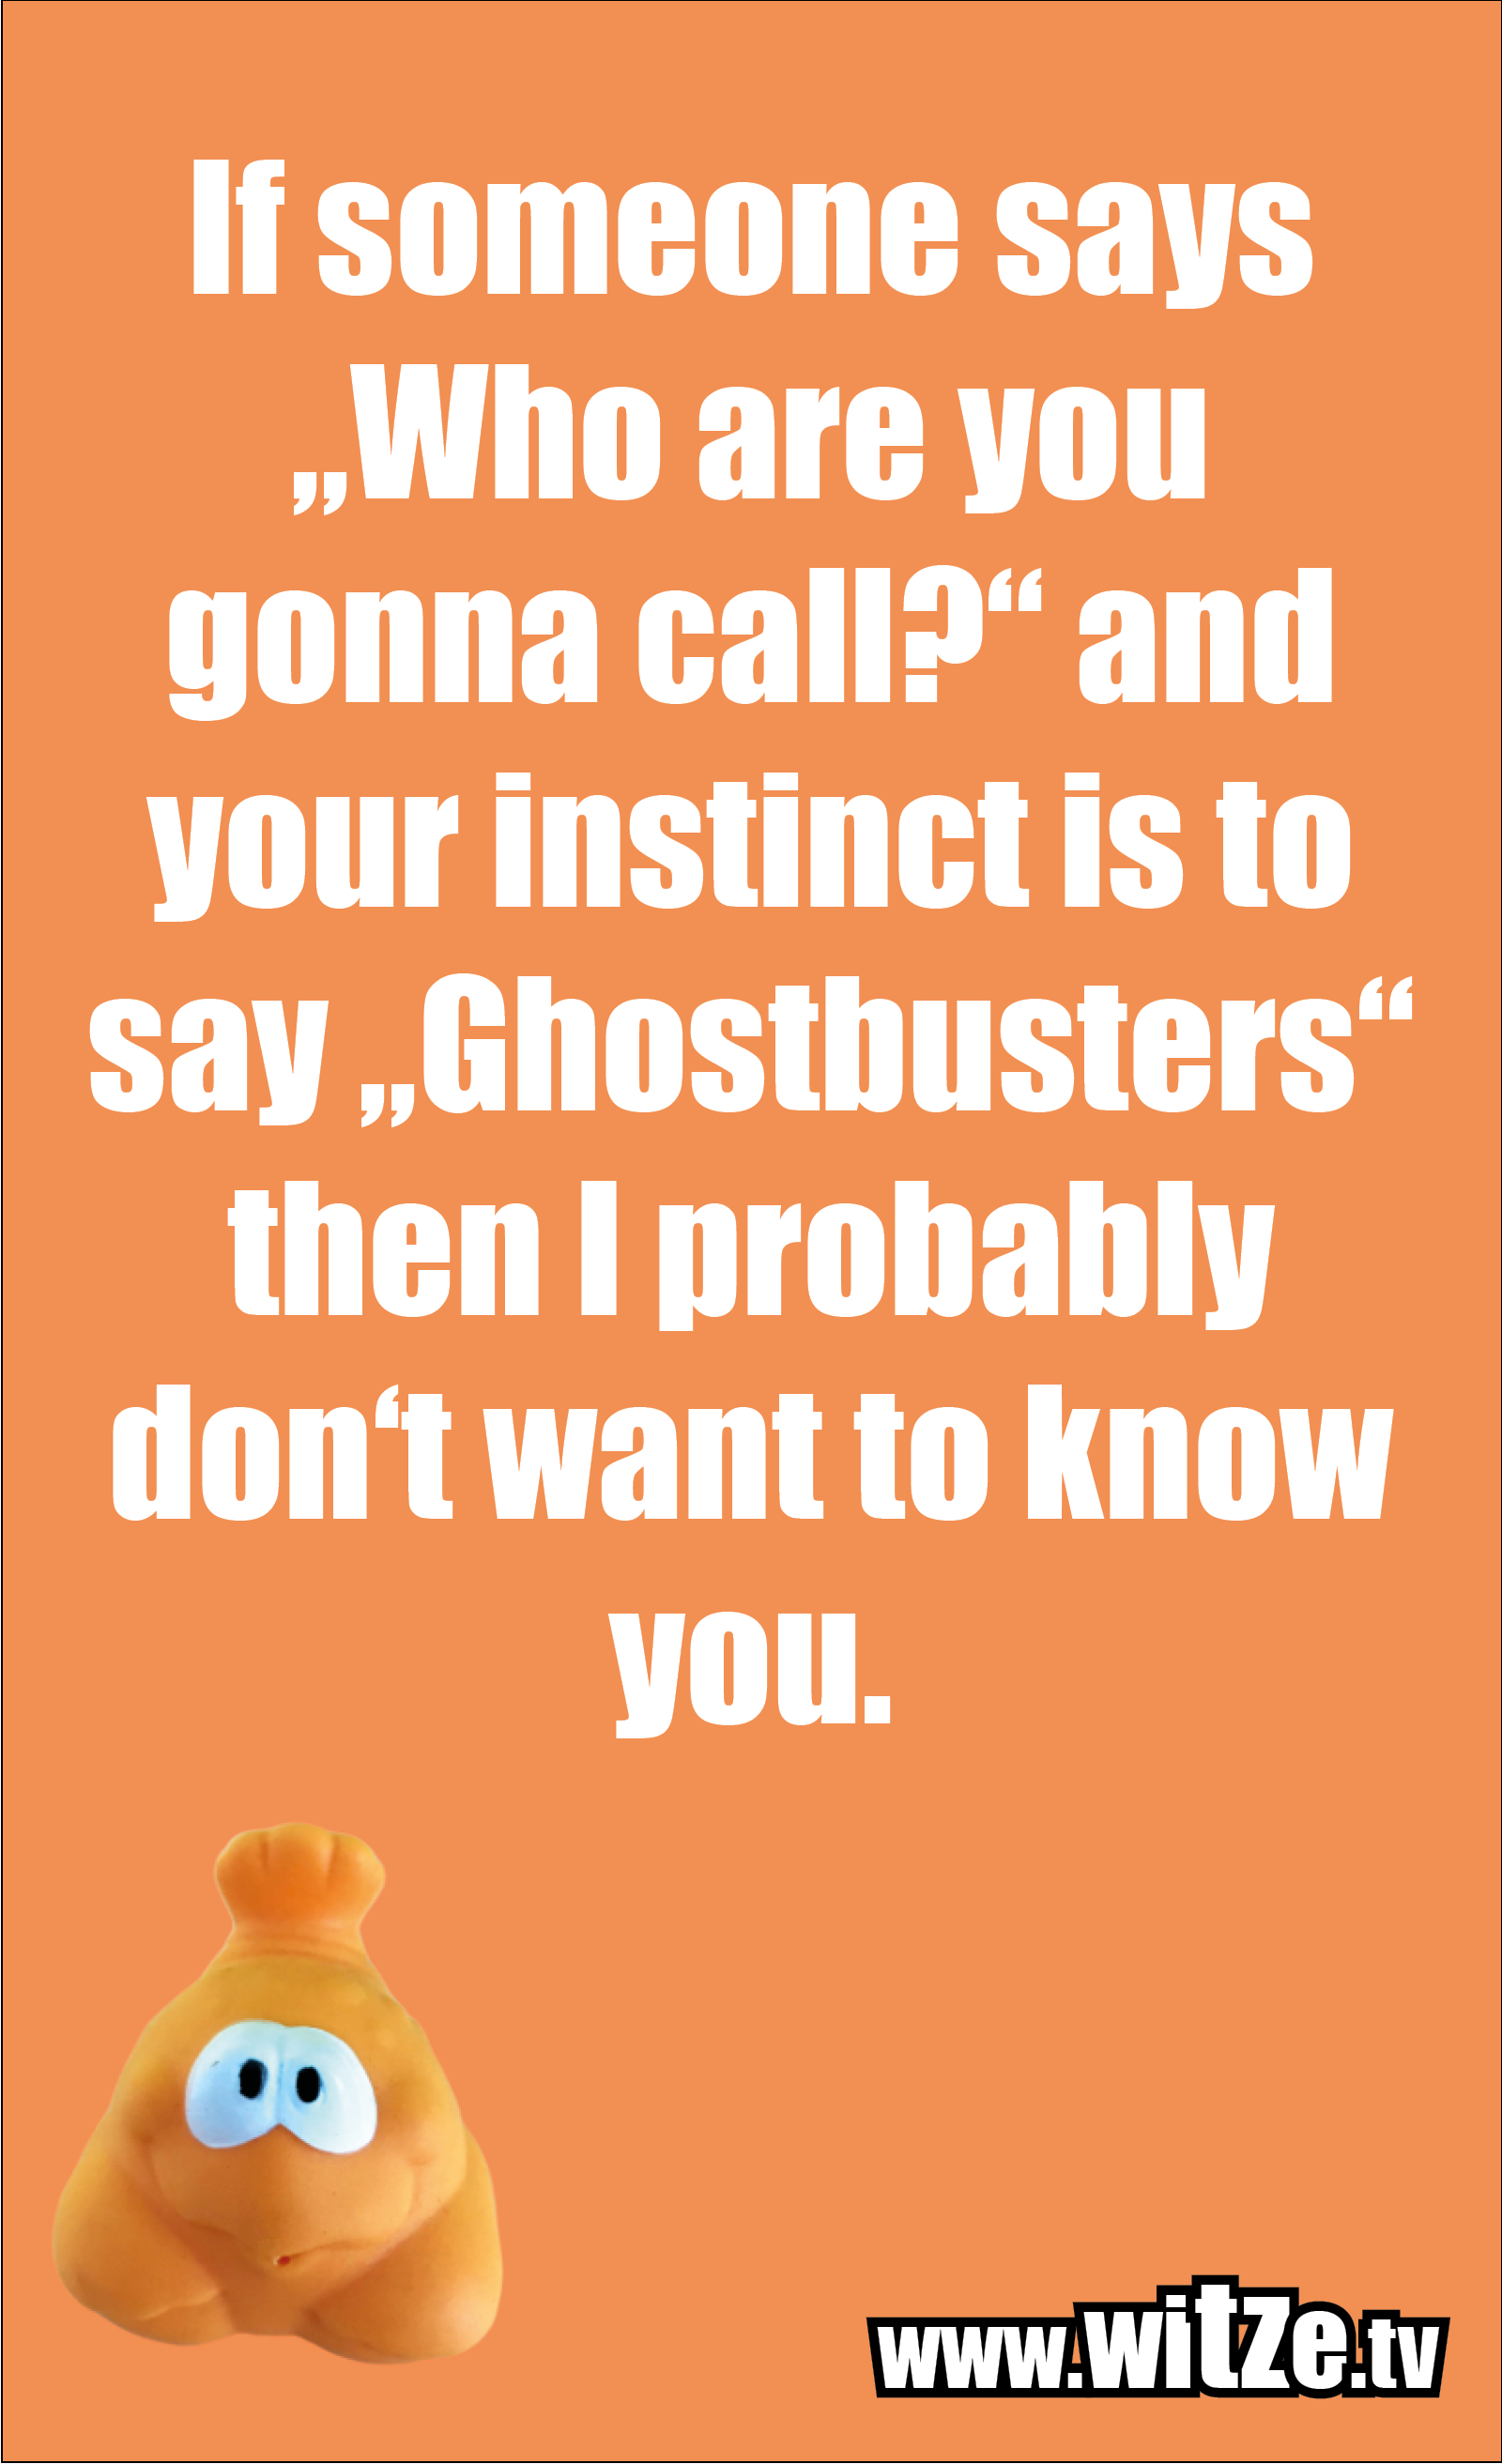 """Funny sayings… If someone says """"Who are you gonna call?"""" and your instinct is to say """"Ghostbusters"""" then I probably don't want to know you."""